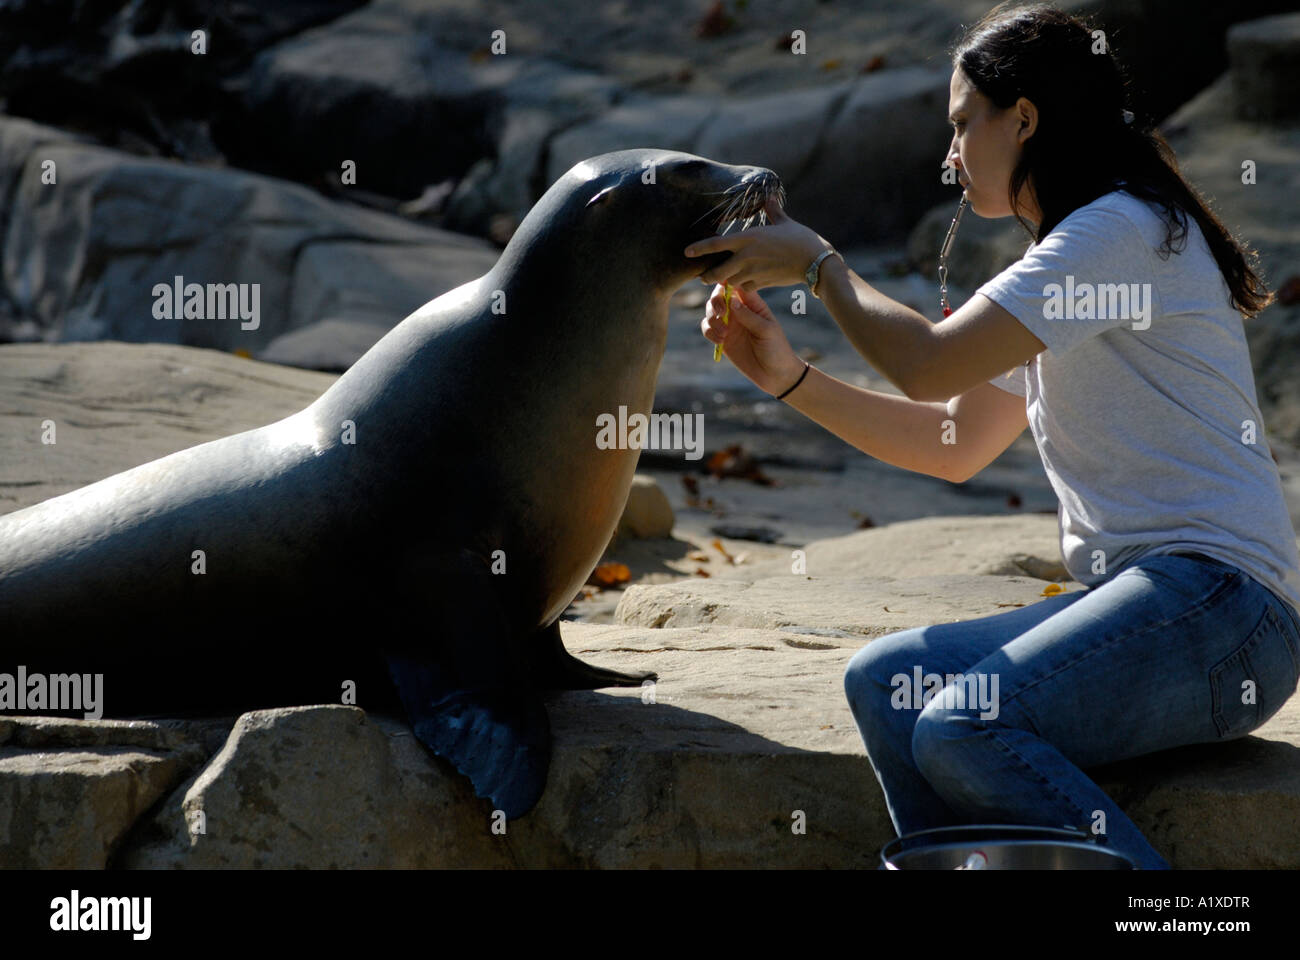 A California sea lion Zalophus californianus having its teeth cleaned by a handler at the National Zoo in Washington - Stock Image